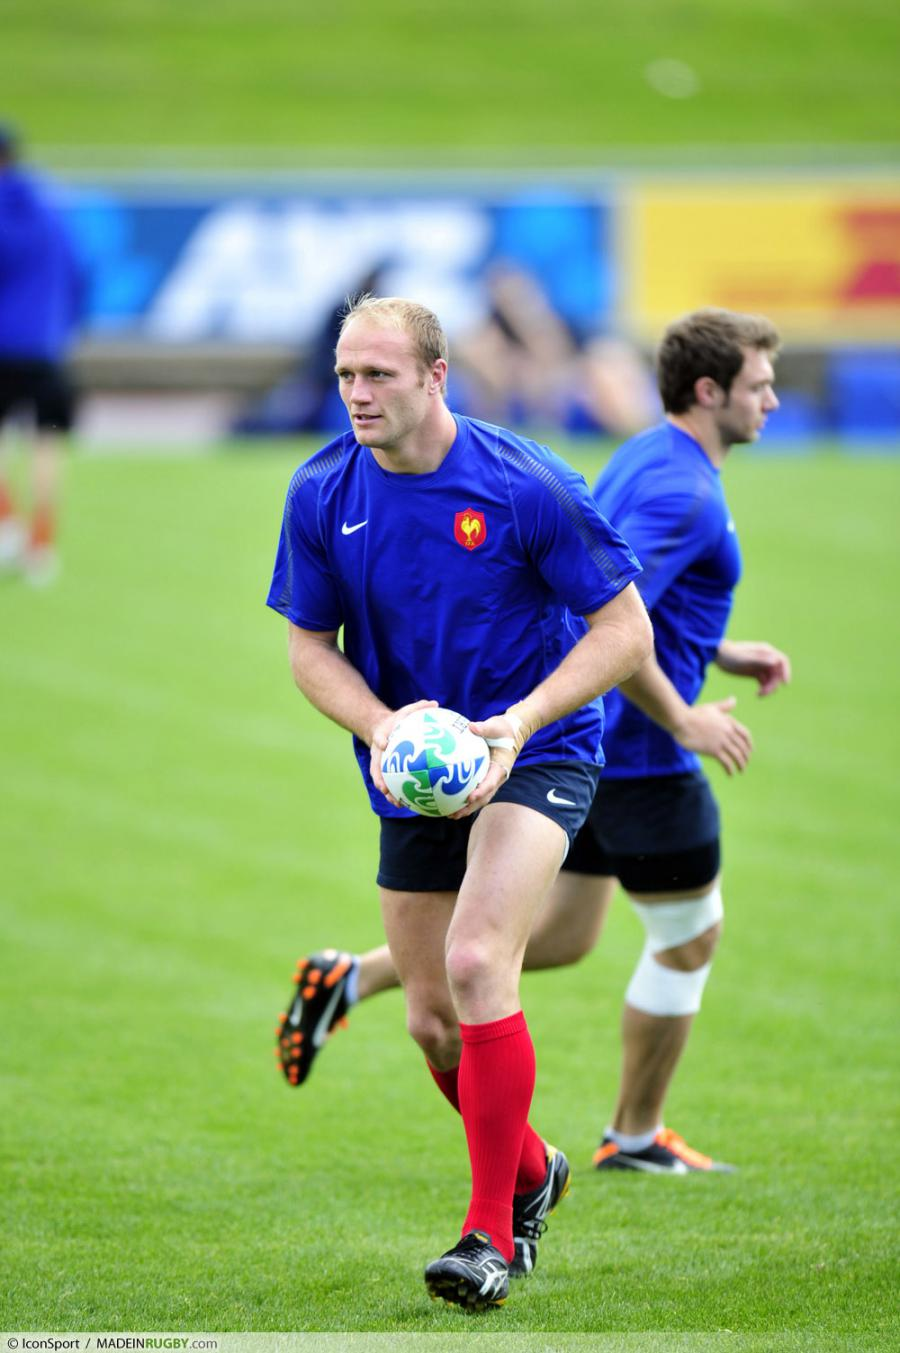 Photos foot julien bonnaire entrainement equipe de france coupe du monde de - Coupe du monde de rugby france ...